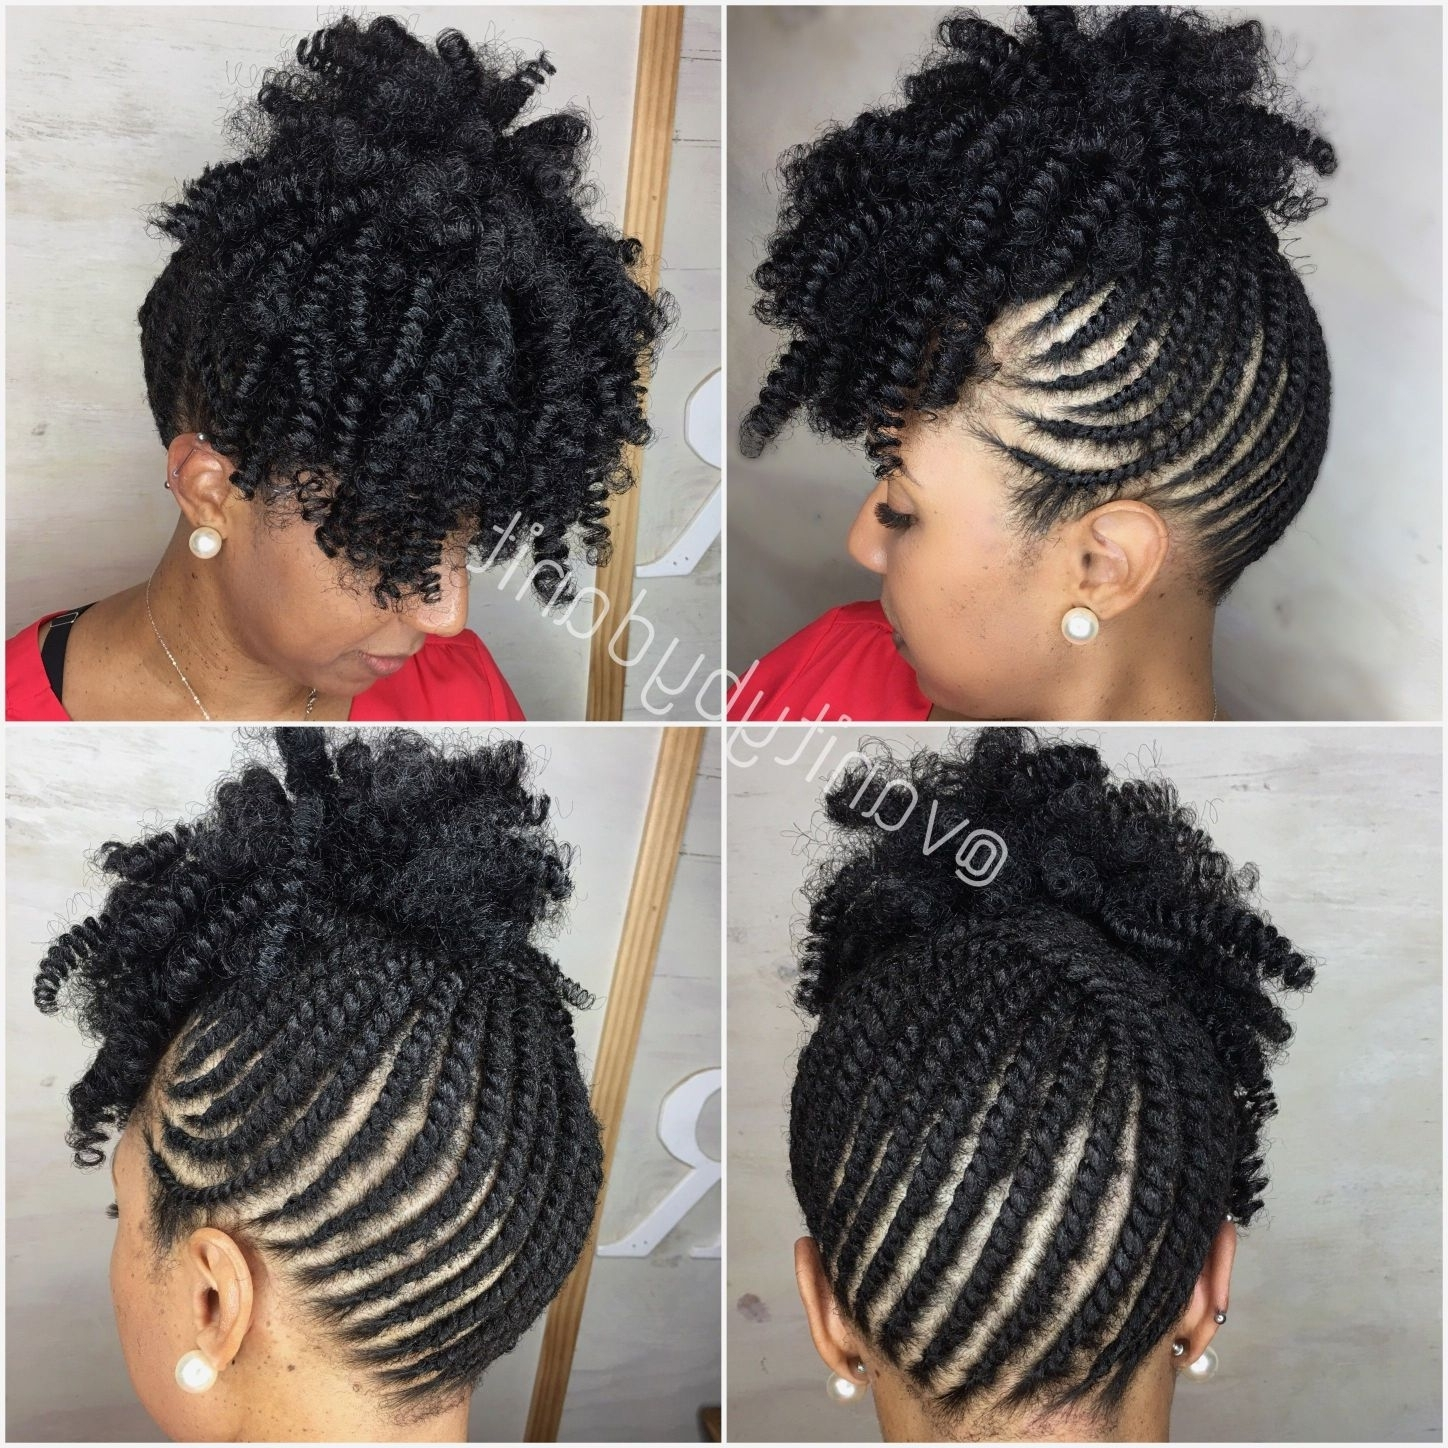 Most Recent Braided Hairstyles On Natural Hair For French Braid Hairstyles Natural Hair Beautiful Braided For (Gallery 10 of 15)